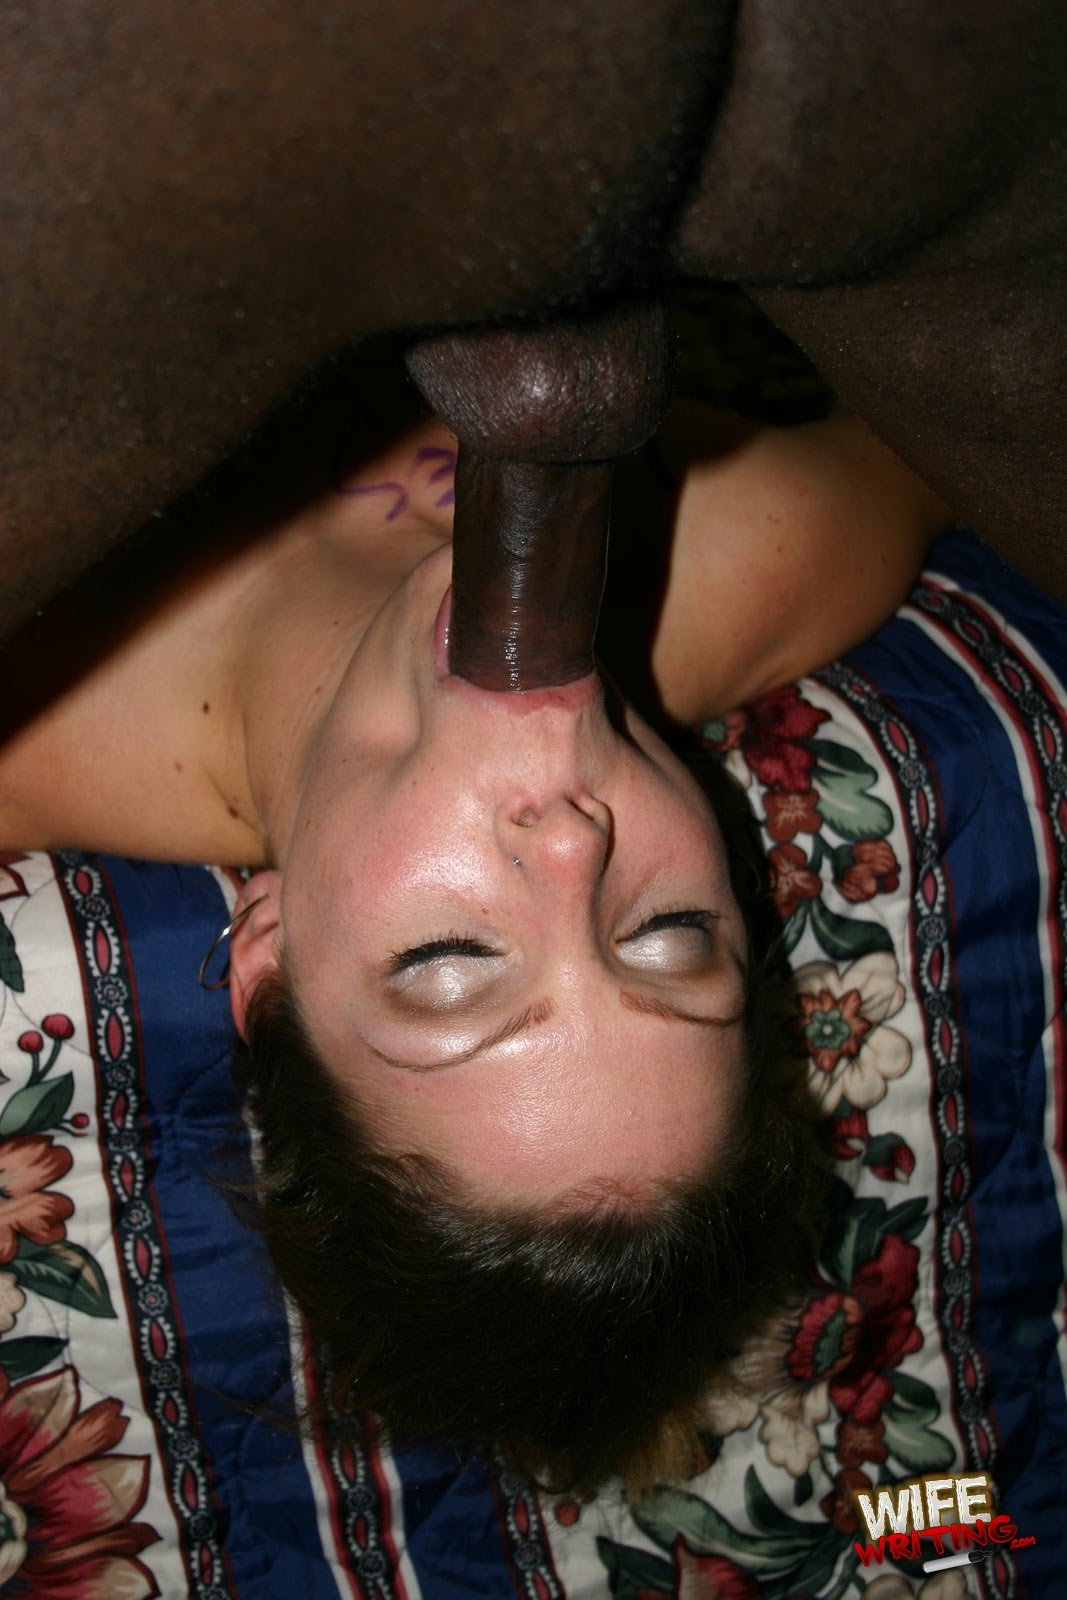 Wife surprises hubby with threesome My wife scref